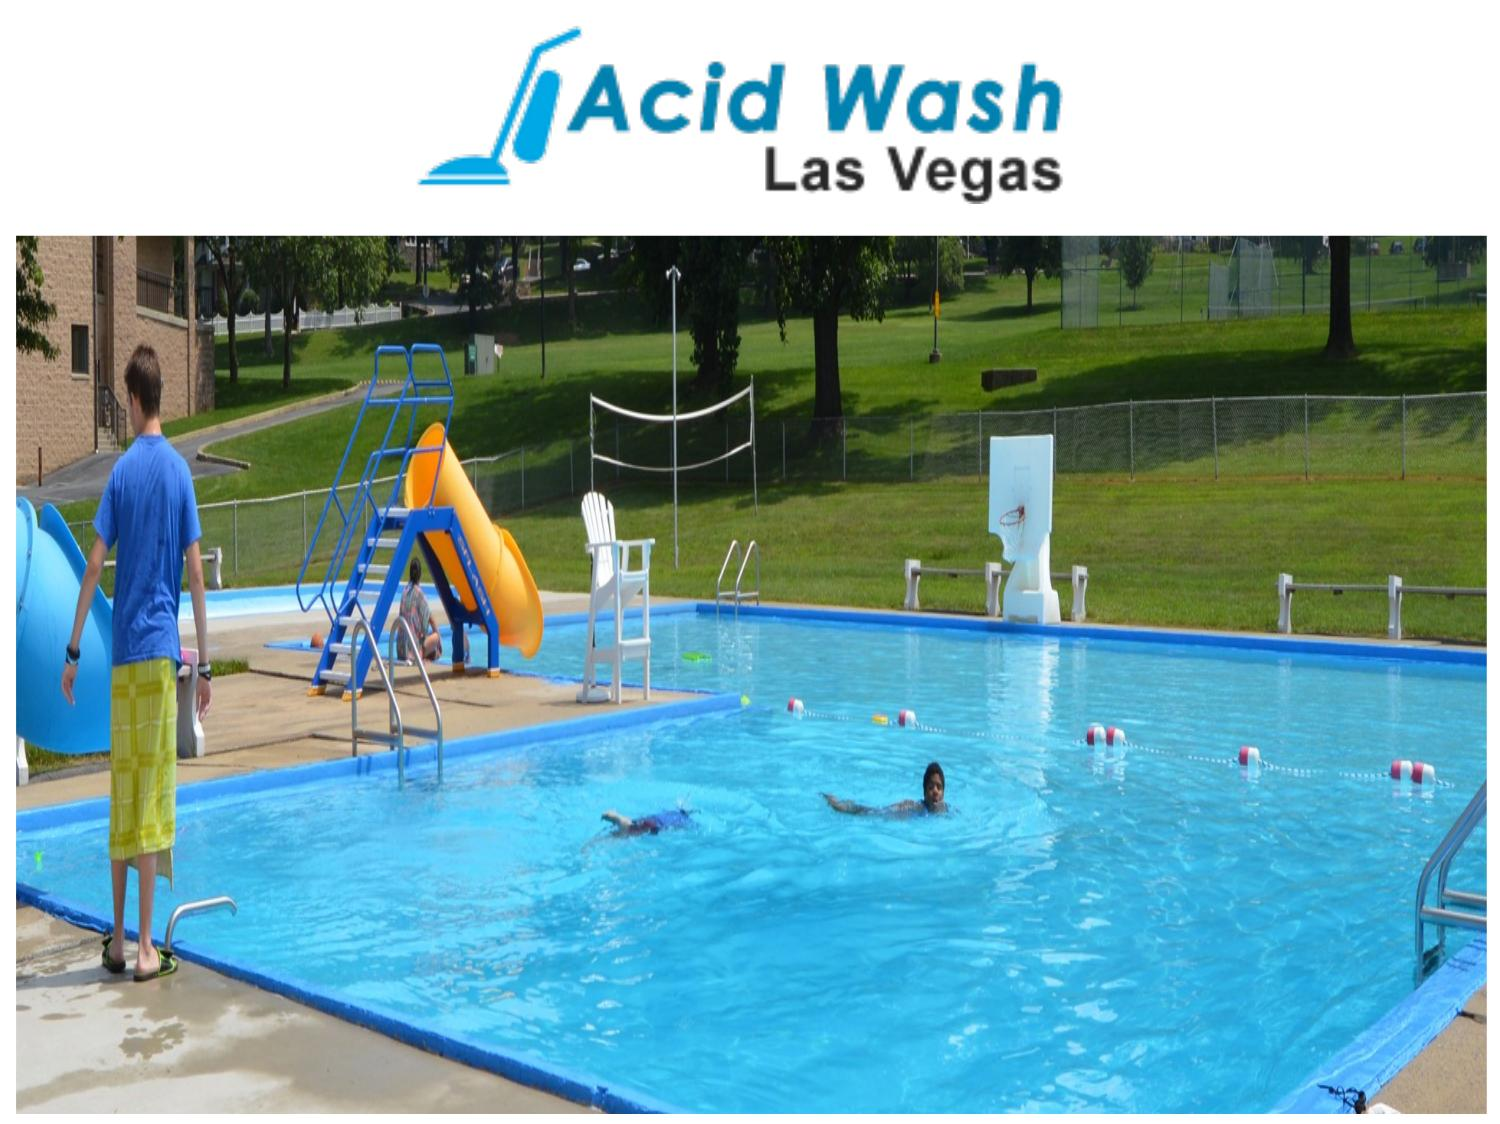 Professional Pool Services in Las Vegas - Pool Services in ...